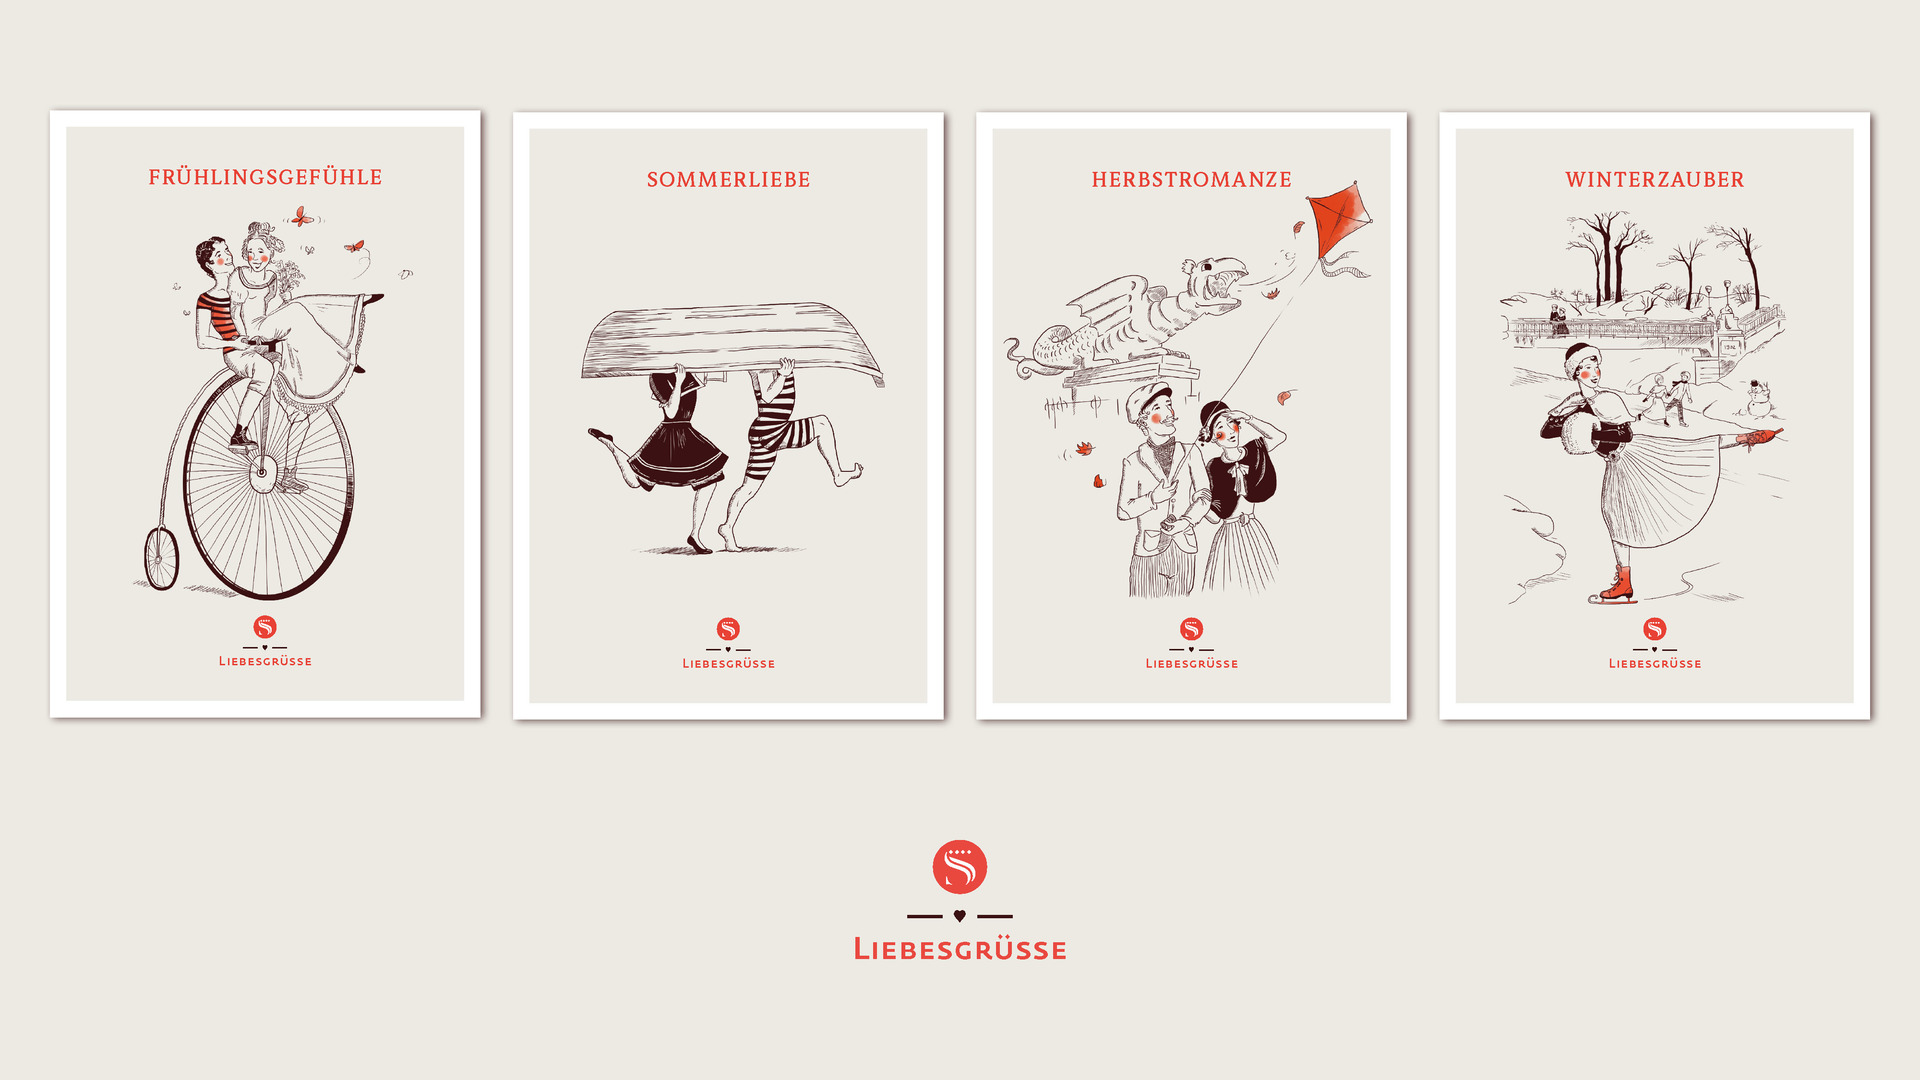 Der Sandwirth - Corporate/Brand Design - bigbang GmbH